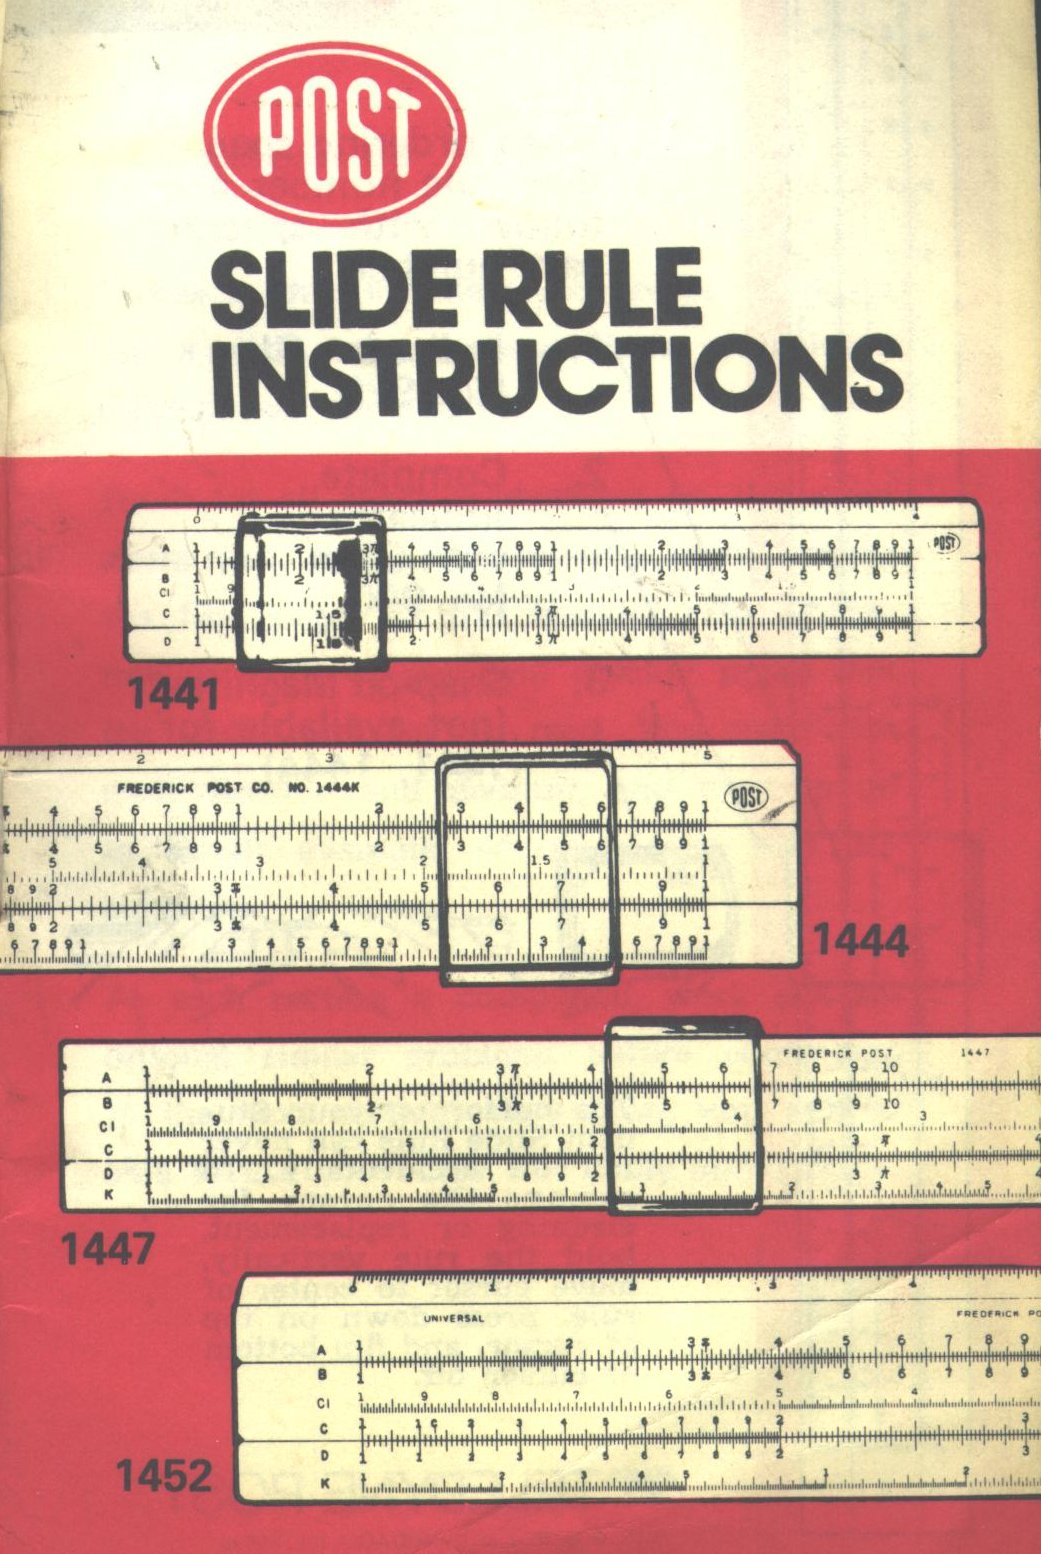 """Post Sliderule Instructions - 1441, 1444, 1447, 1452. Teledyne Post  Chicago, Illinois, 60690, USA 3"""" x 5"""" booklet, 20 pages"""